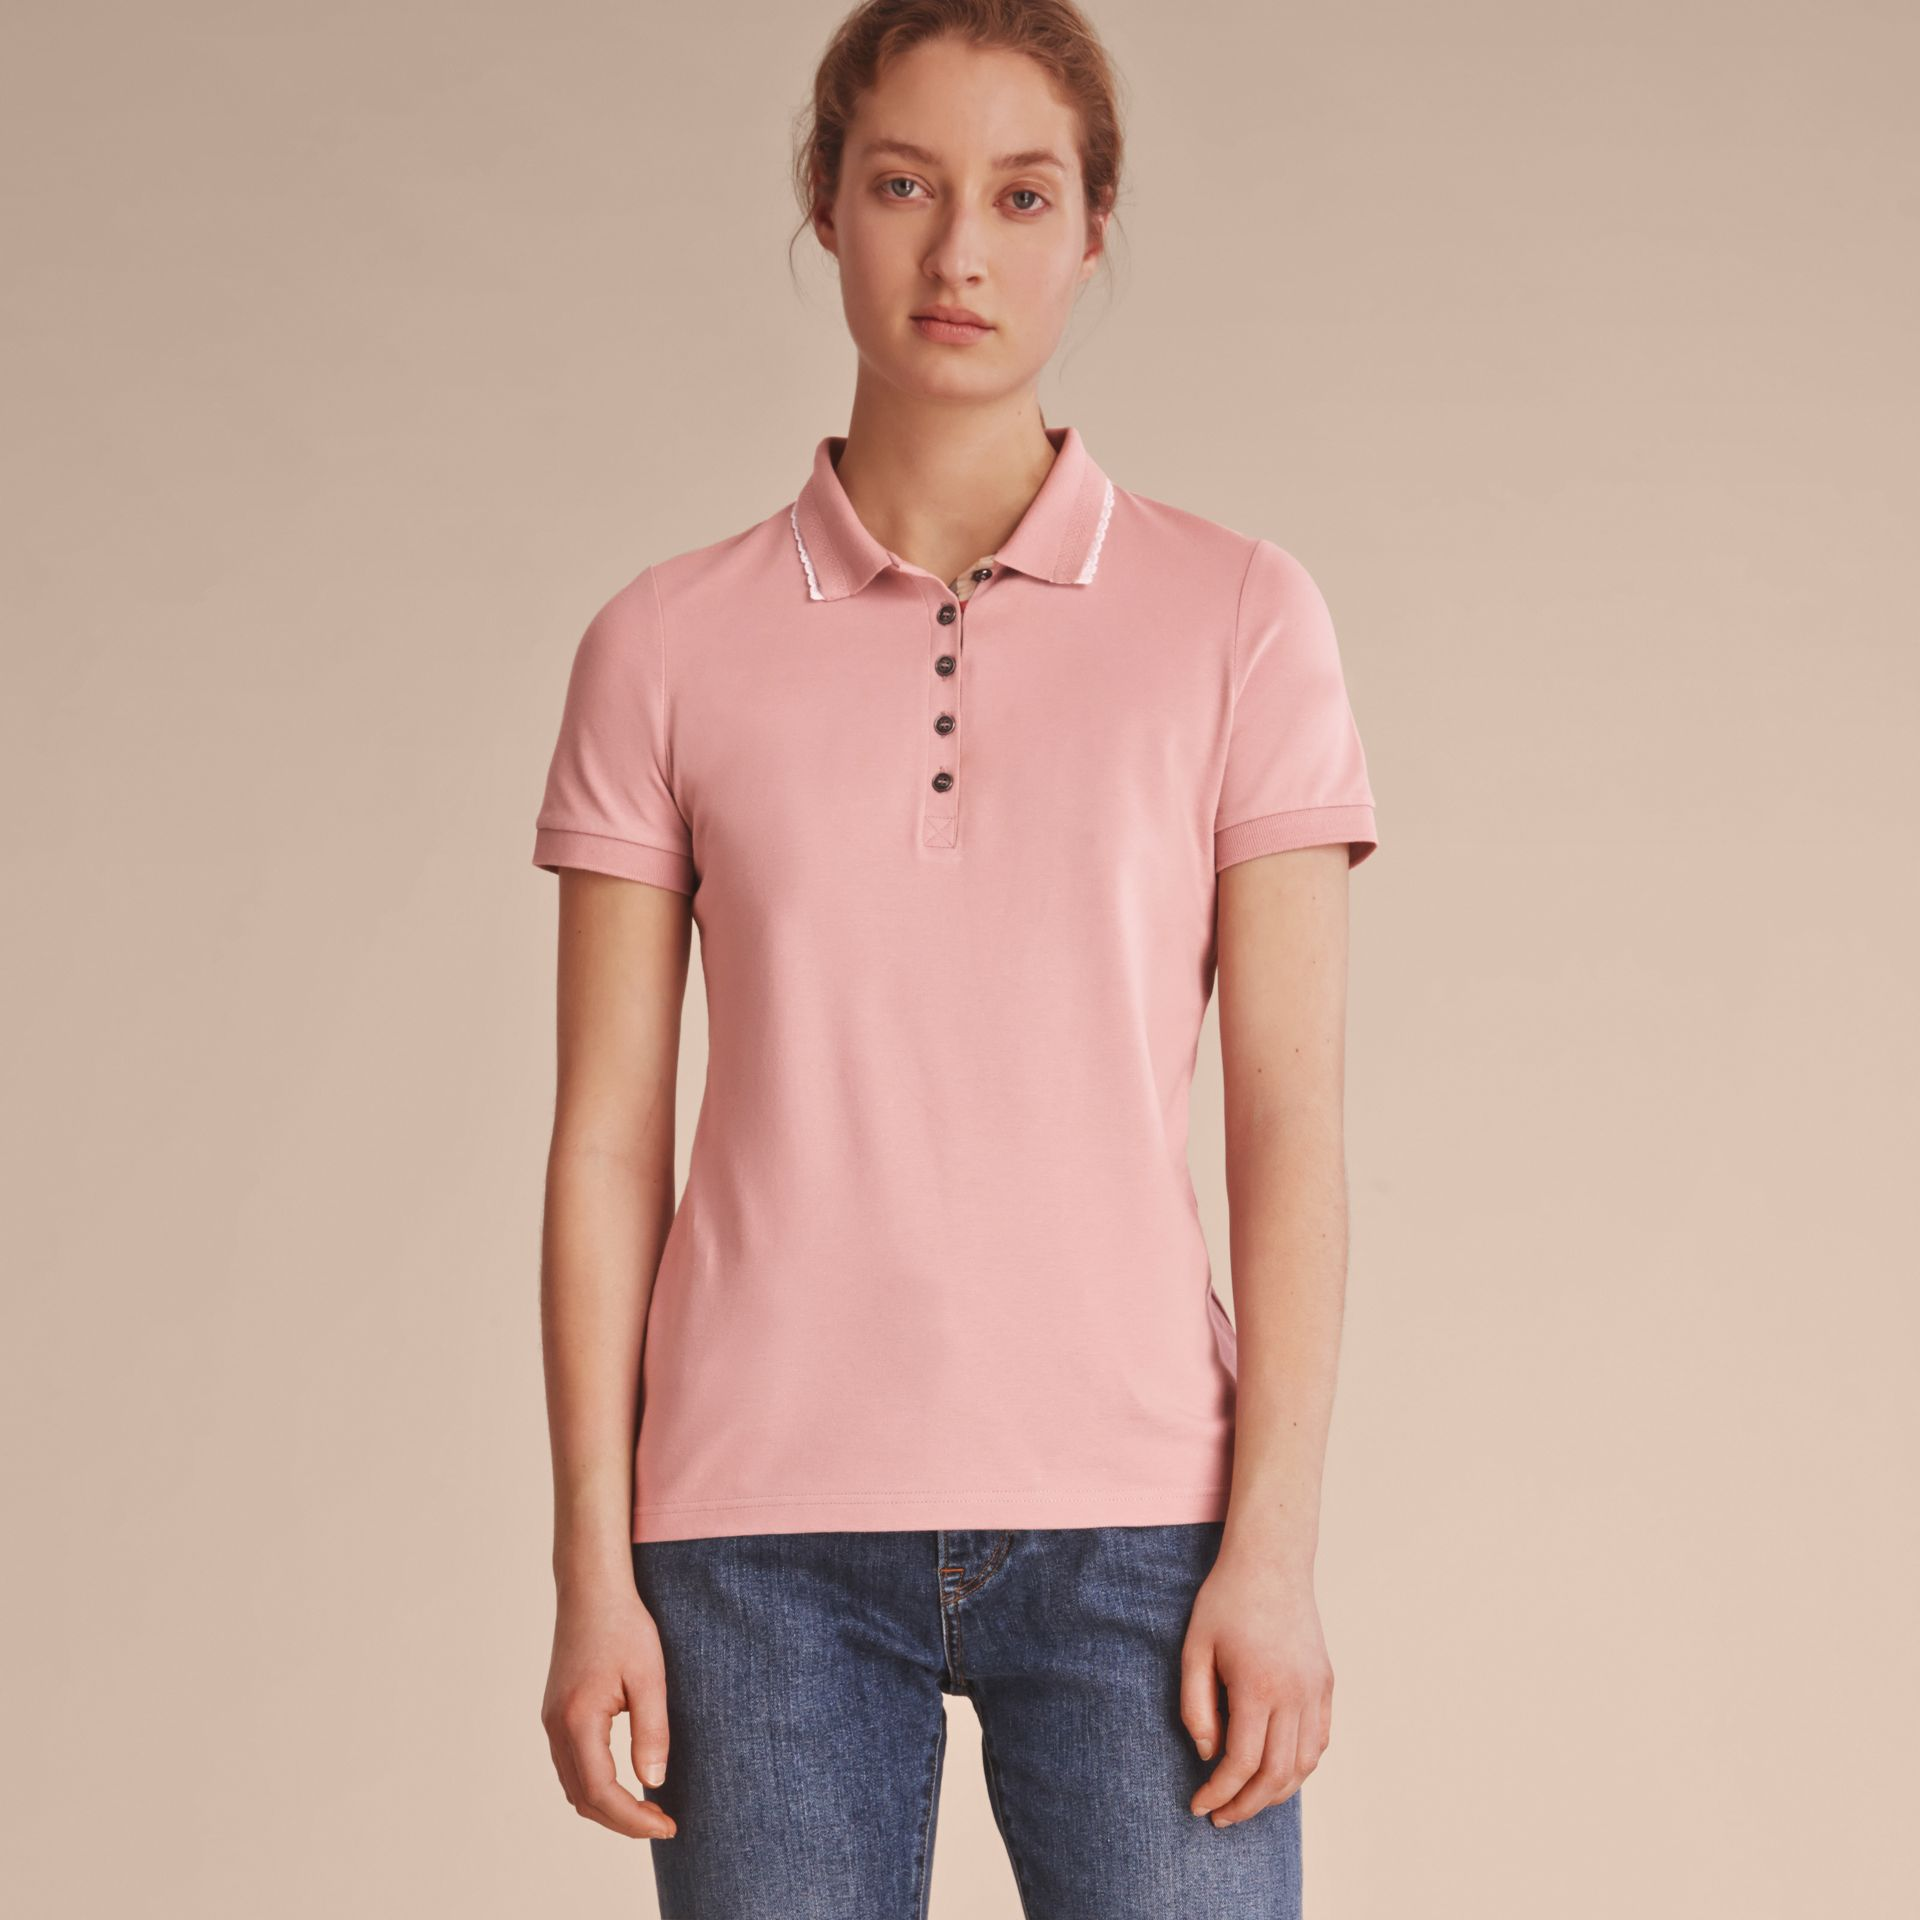 Lace Trim Cotton Blend Polo Shirt with Check Detail in Nude - Women | Burberry - gallery image 7